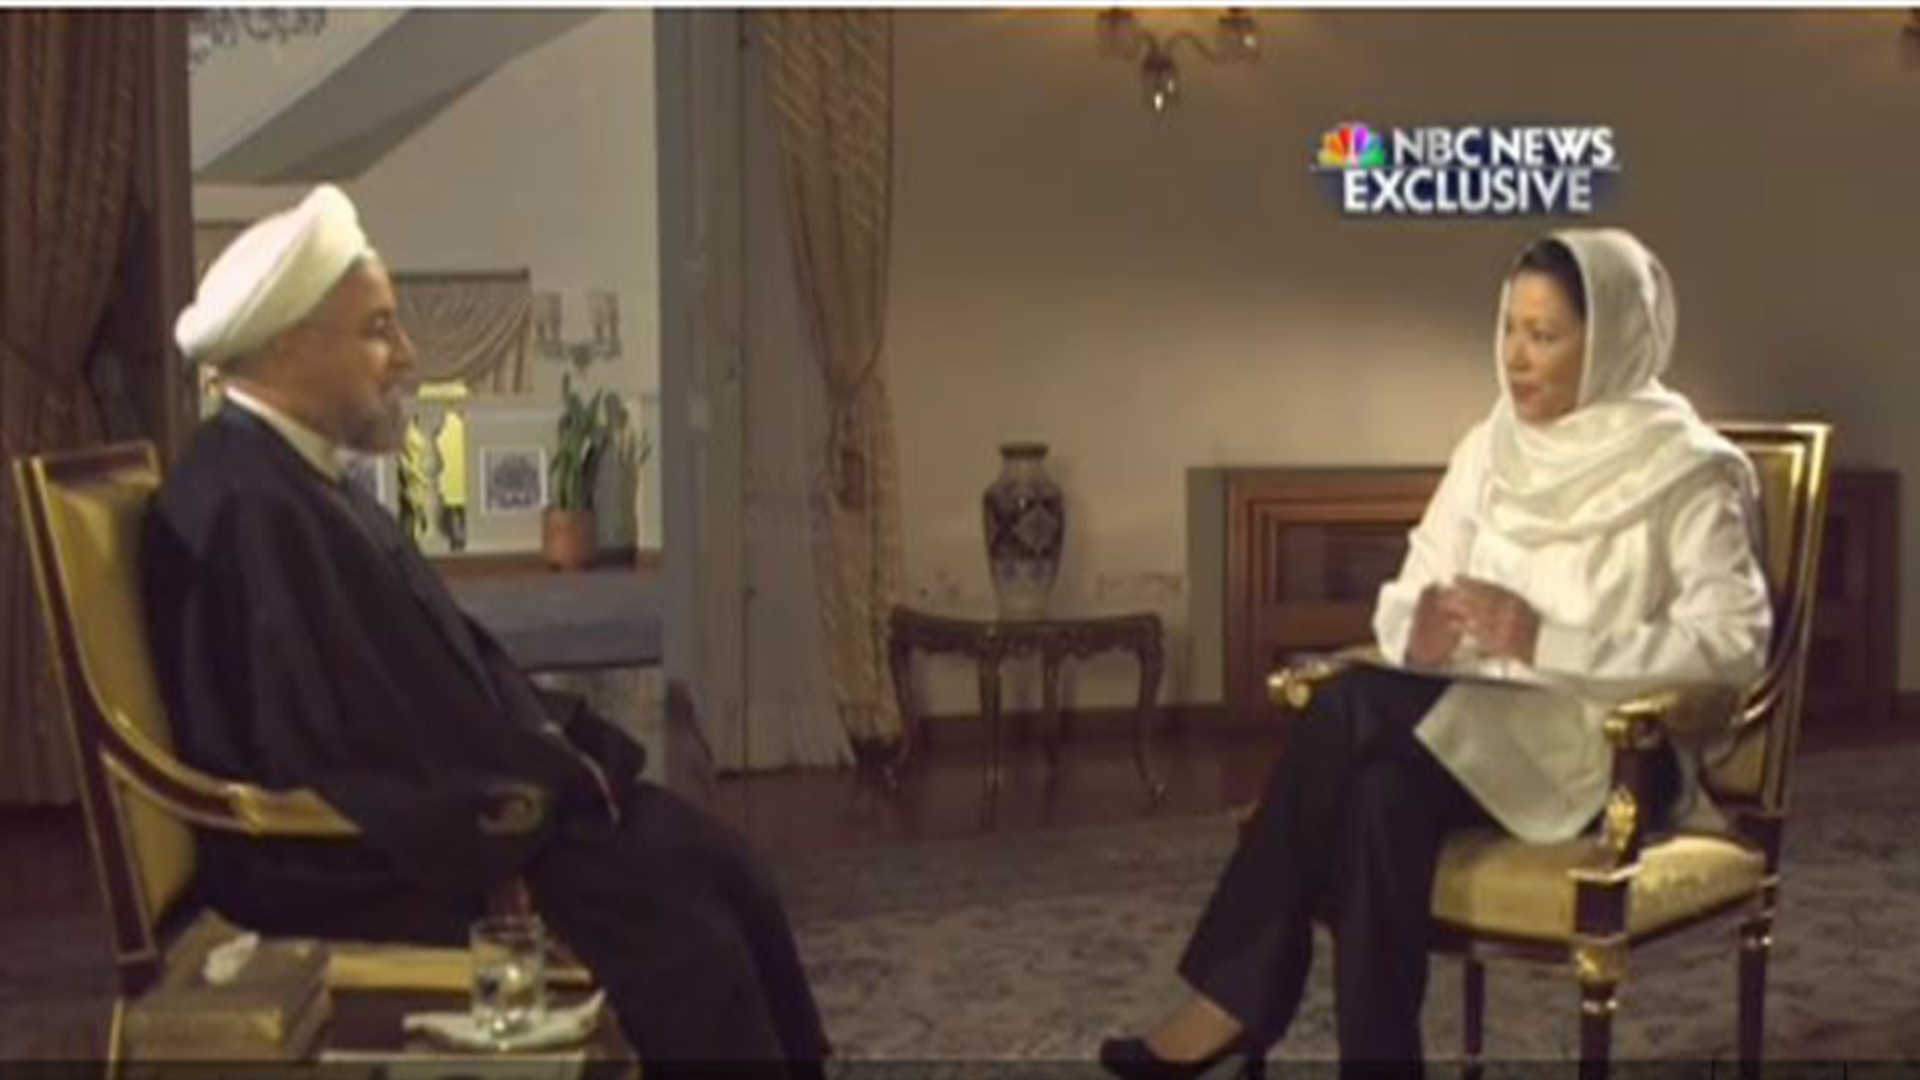 Full Hassan Rouhani interview